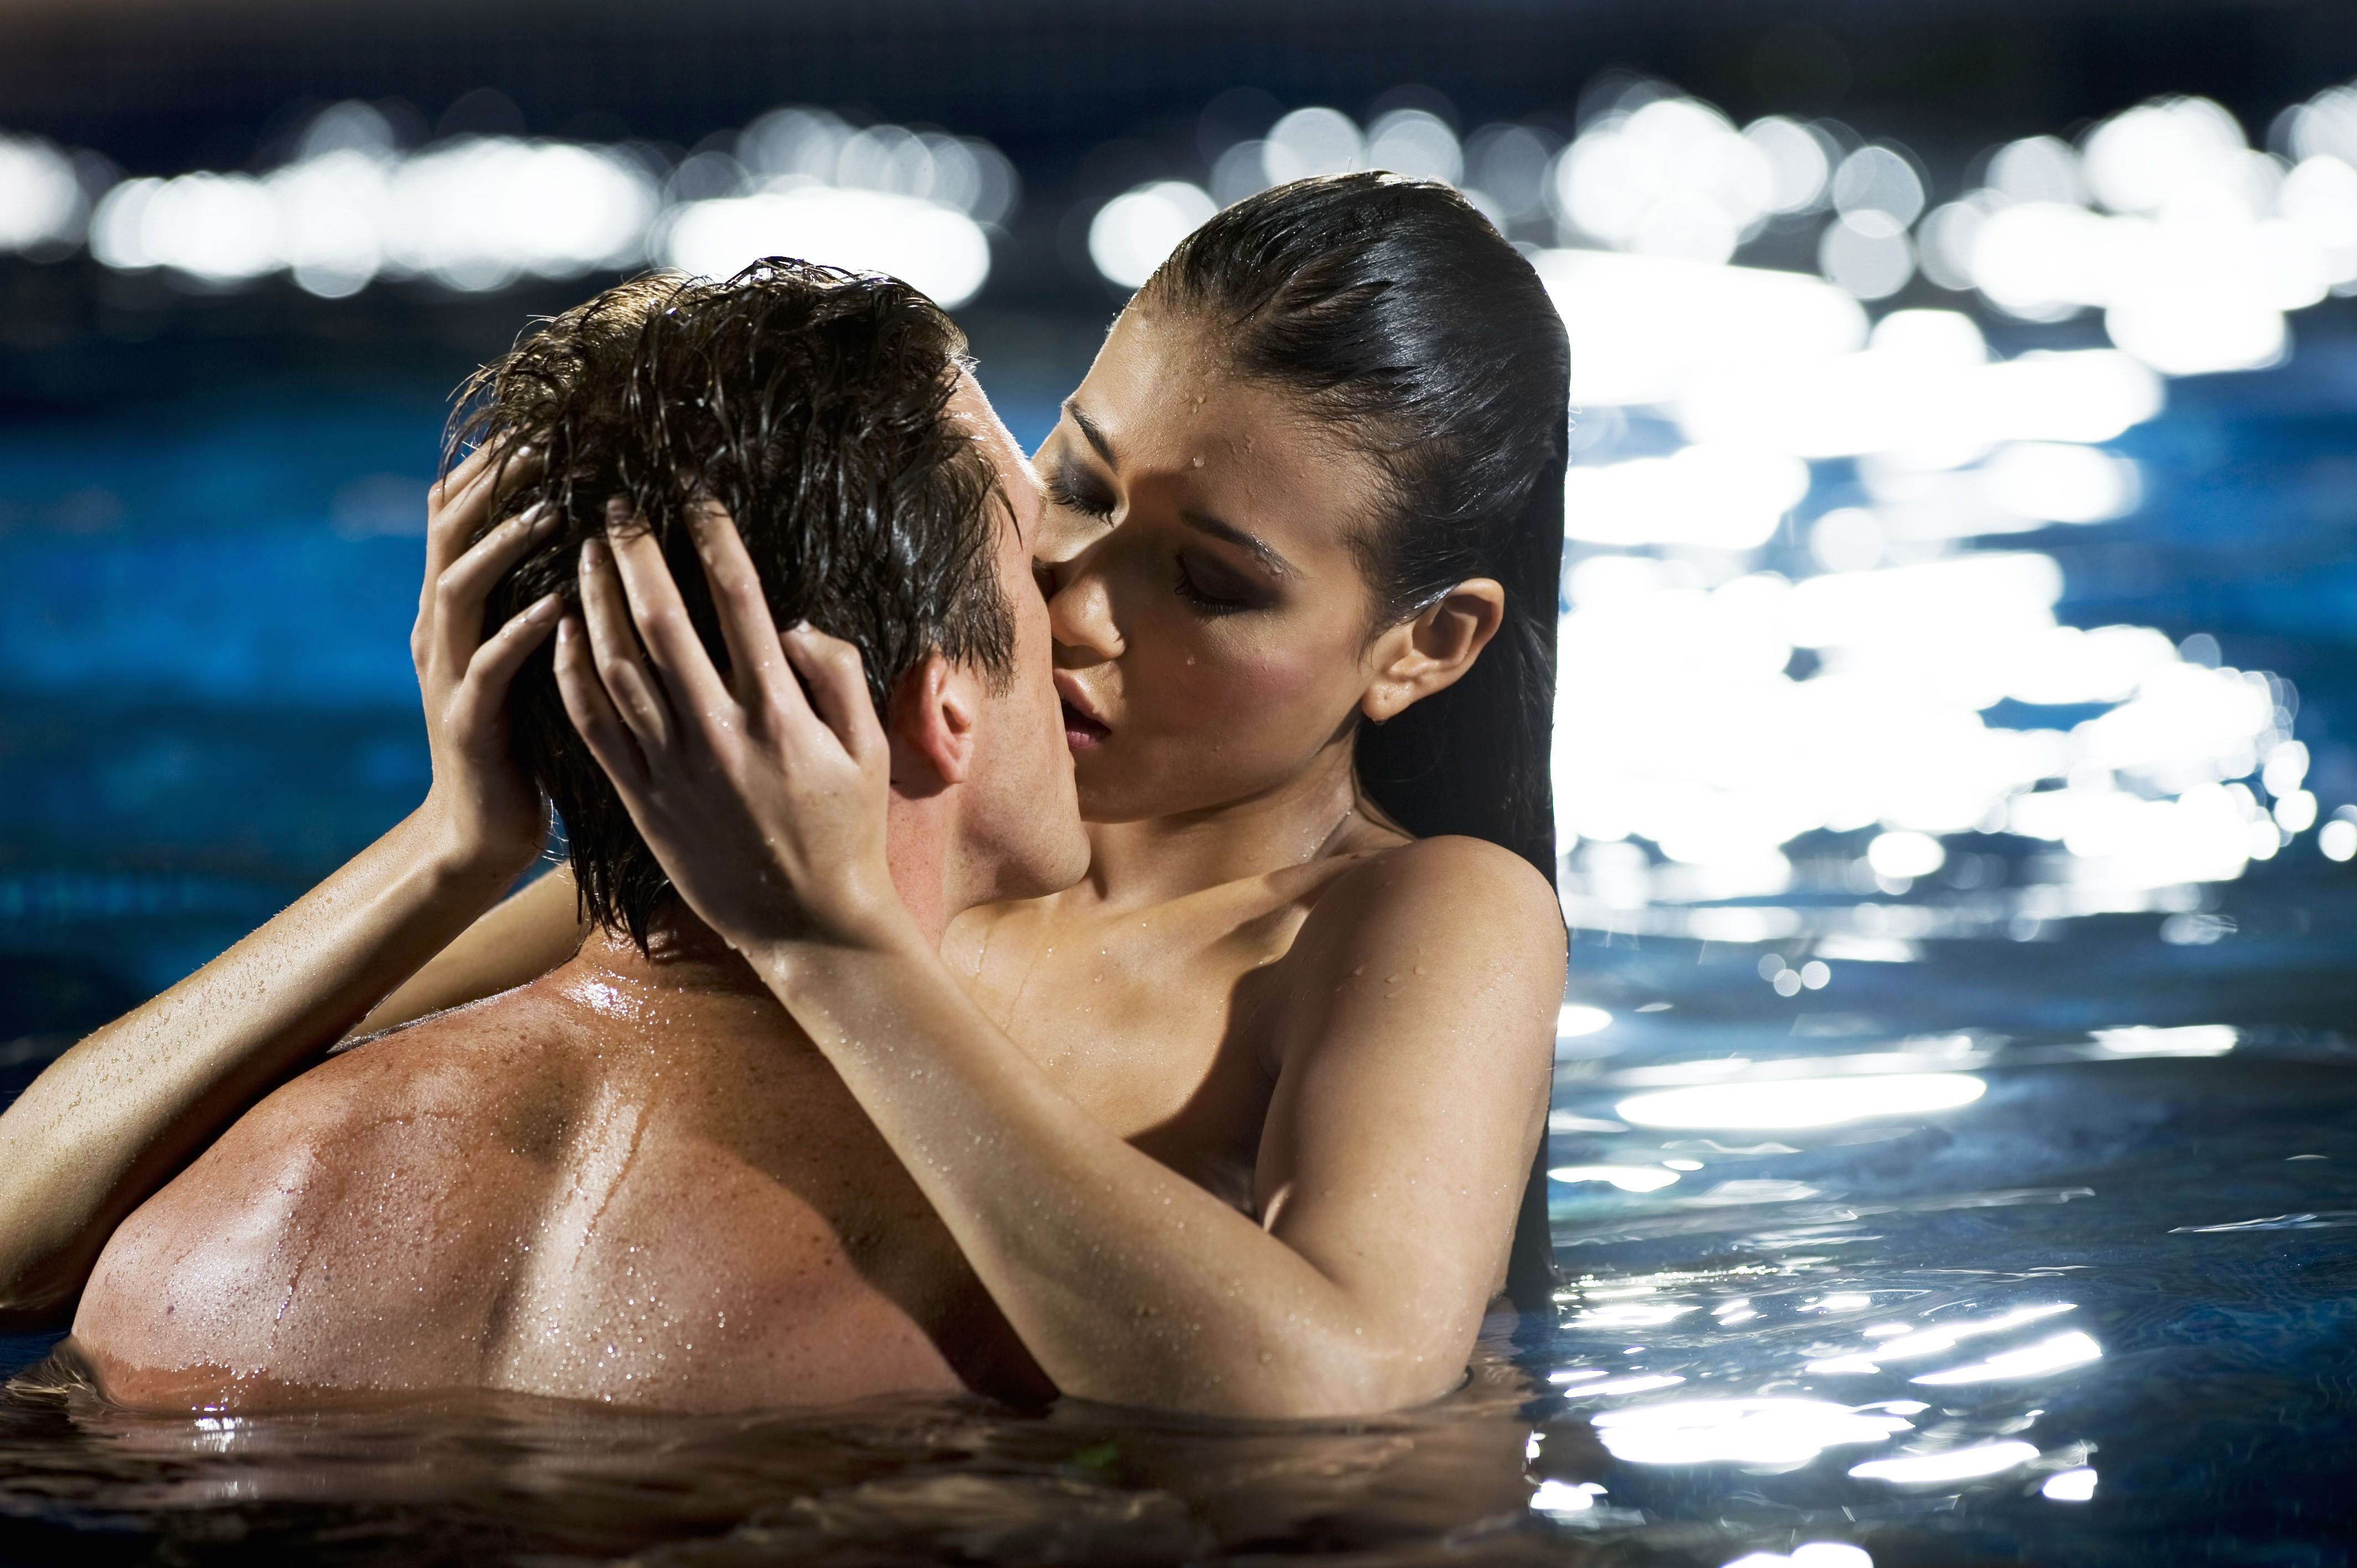 Why You Should Think Twice Before Having Pool Sex